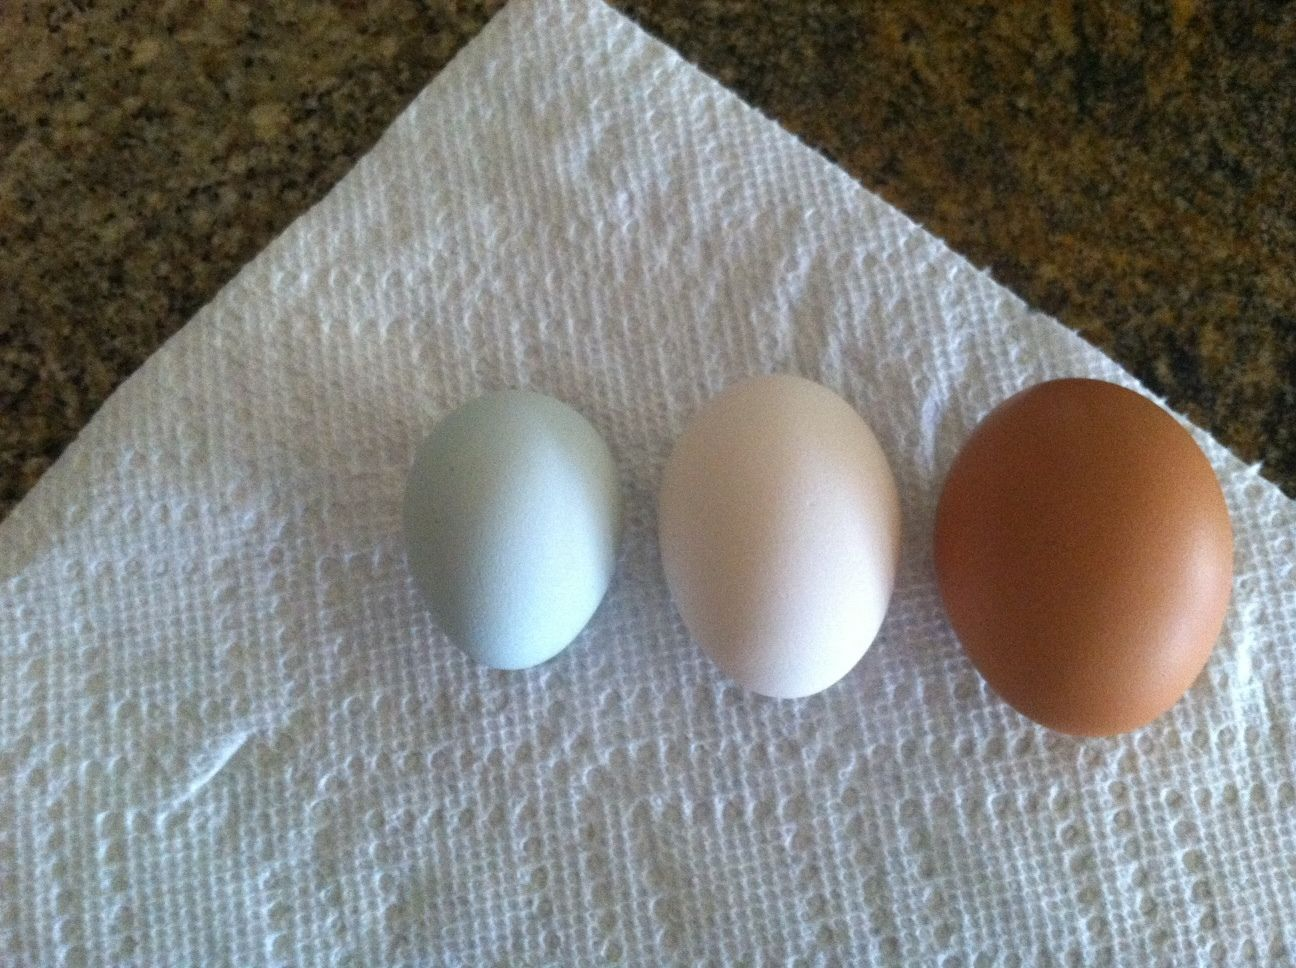 auntie hattie's photos in Who's Setting Eggs This Week[end]? [August 8-14]